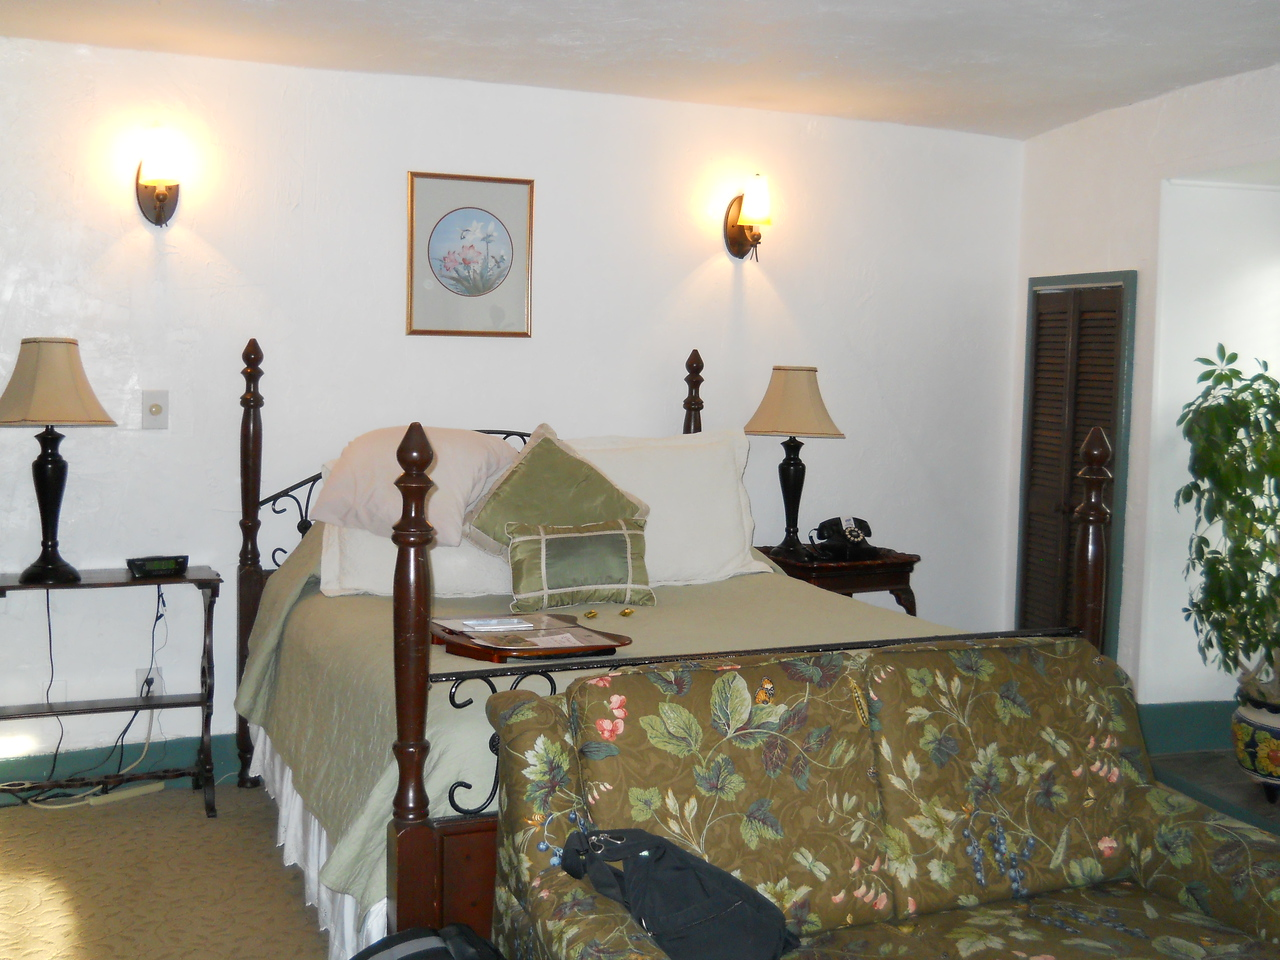 This year we drove to Florida, stopping for a night in Mebane, NC to have dinner with friends and than on to St. Augustine for 2 nights.  This is our room in the St. Francis Inn